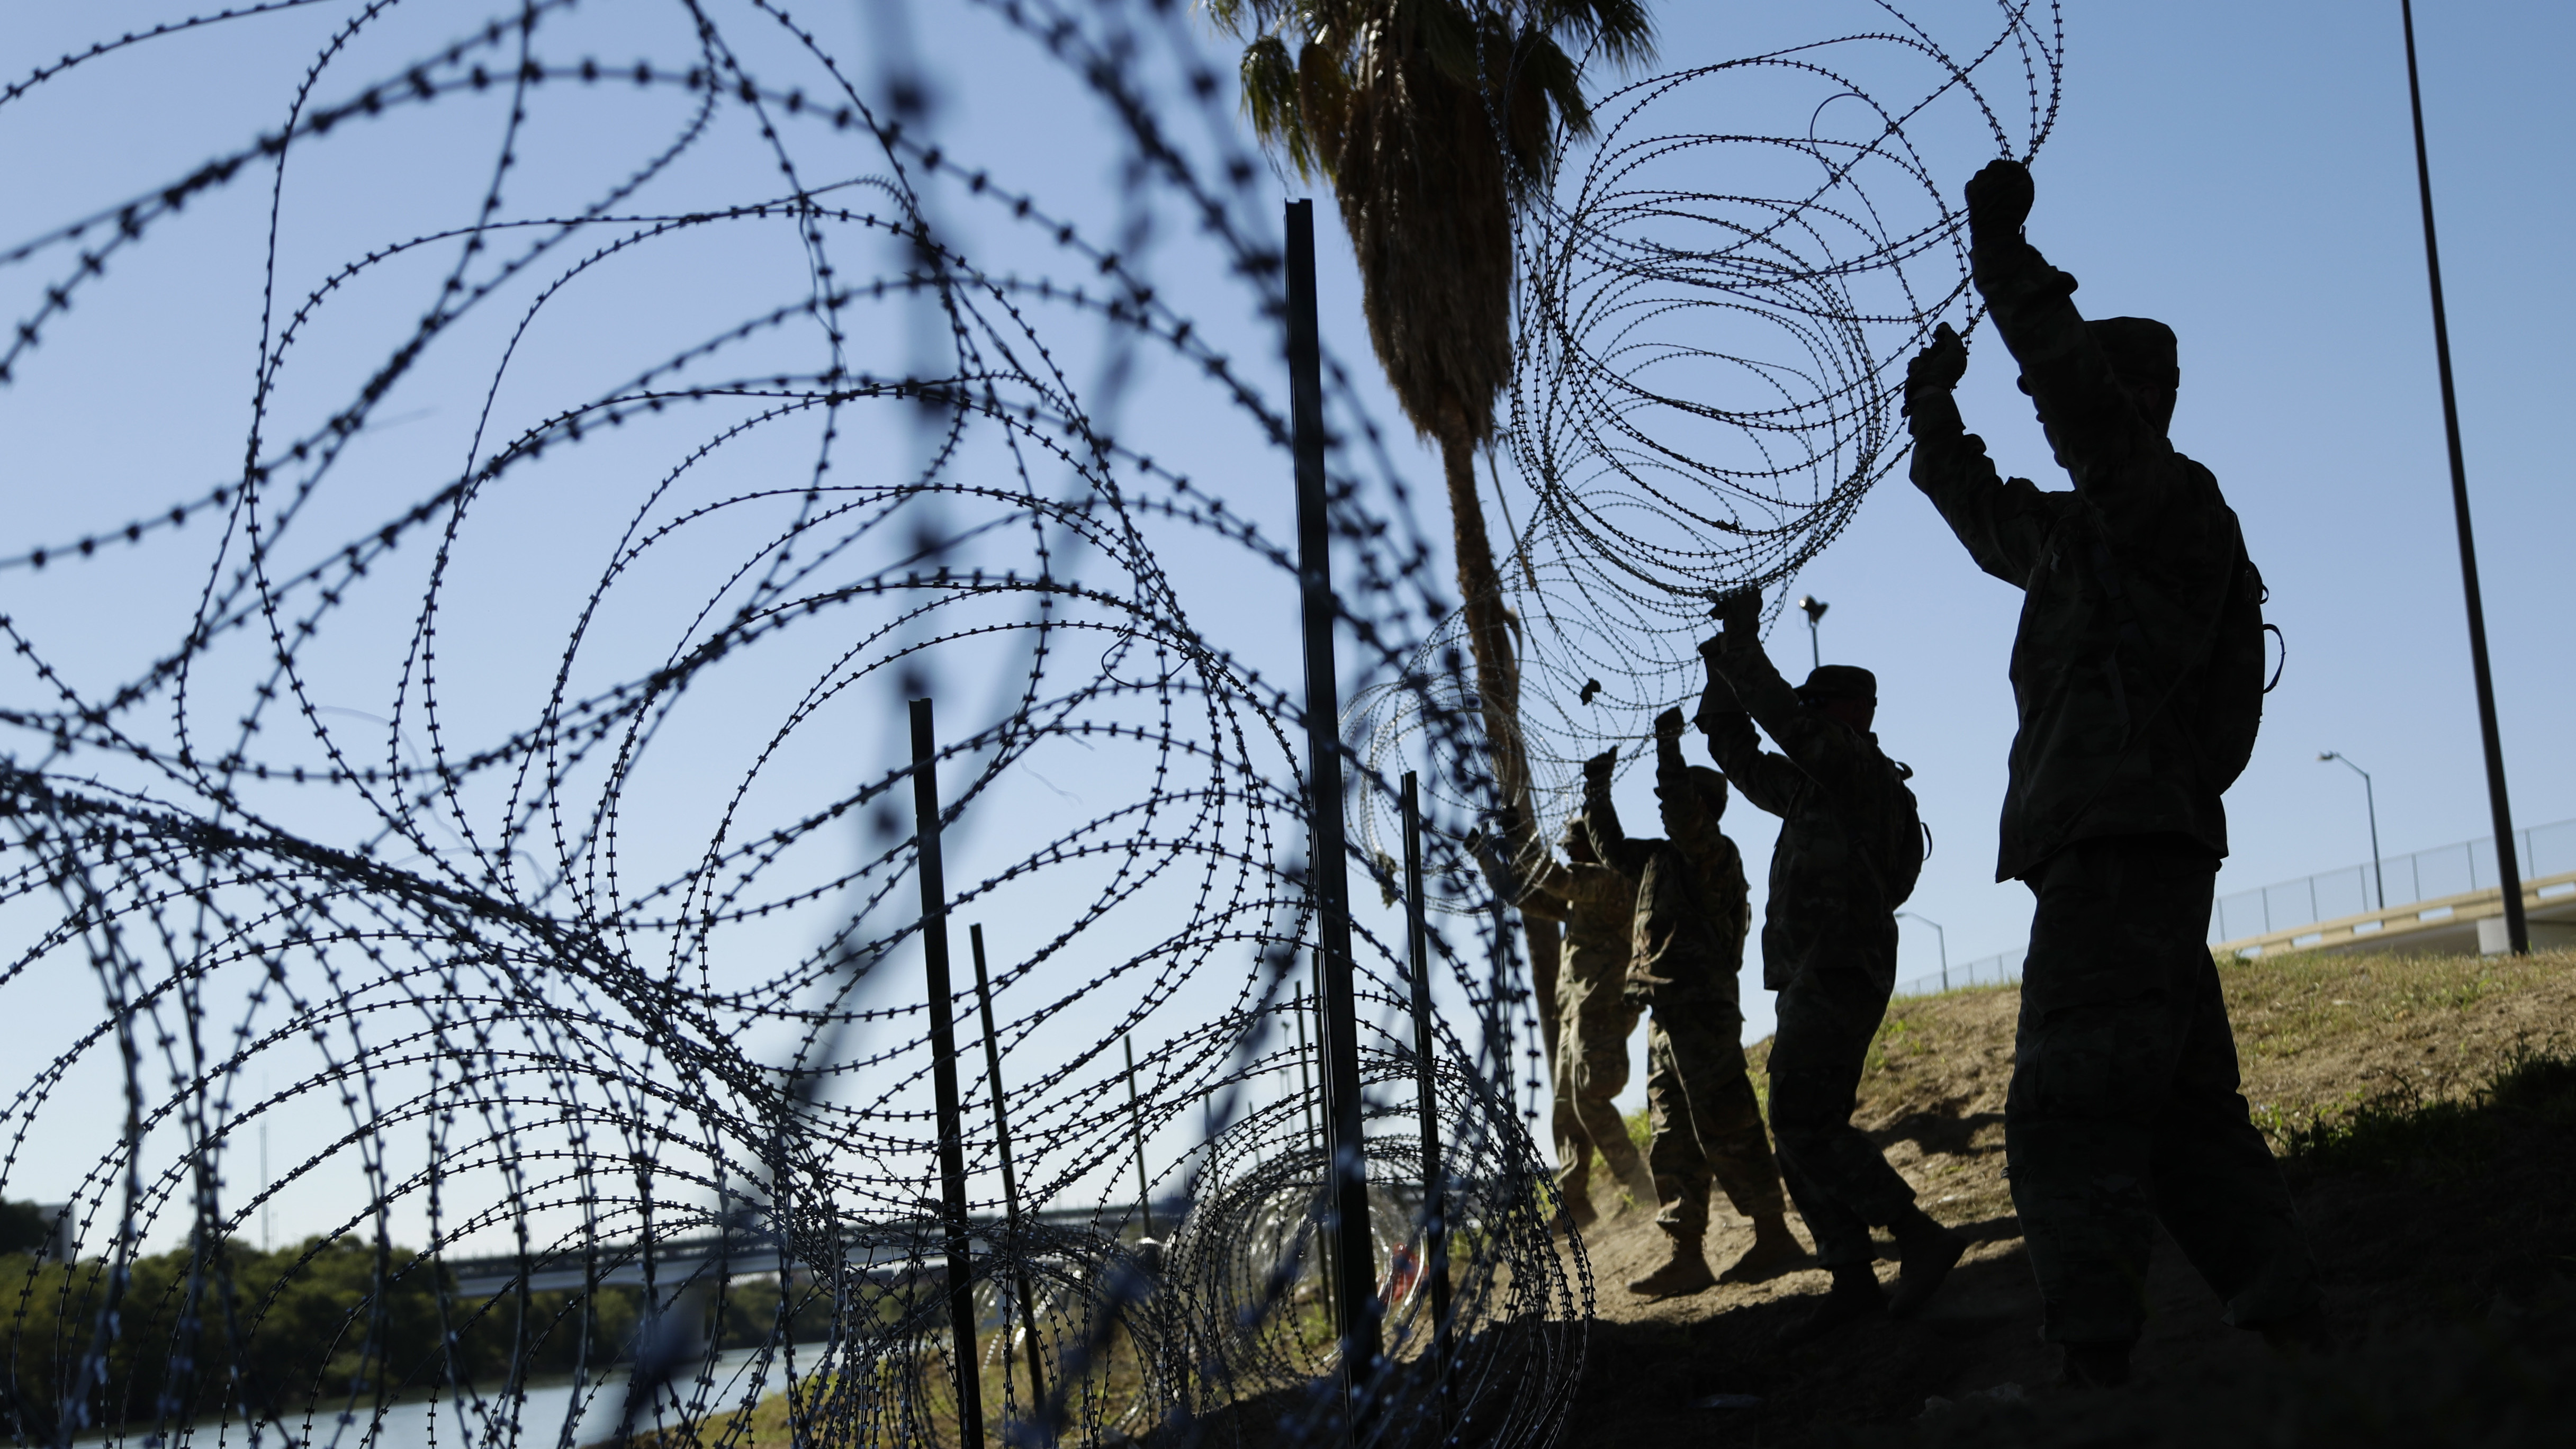 Members of the U.S. military install multiple tiers of concertina wire along the banks of the Rio Grande near the Juarez-Lincoln Bridge at the U.S.-Mexico border in Laredo, Texas, in November.